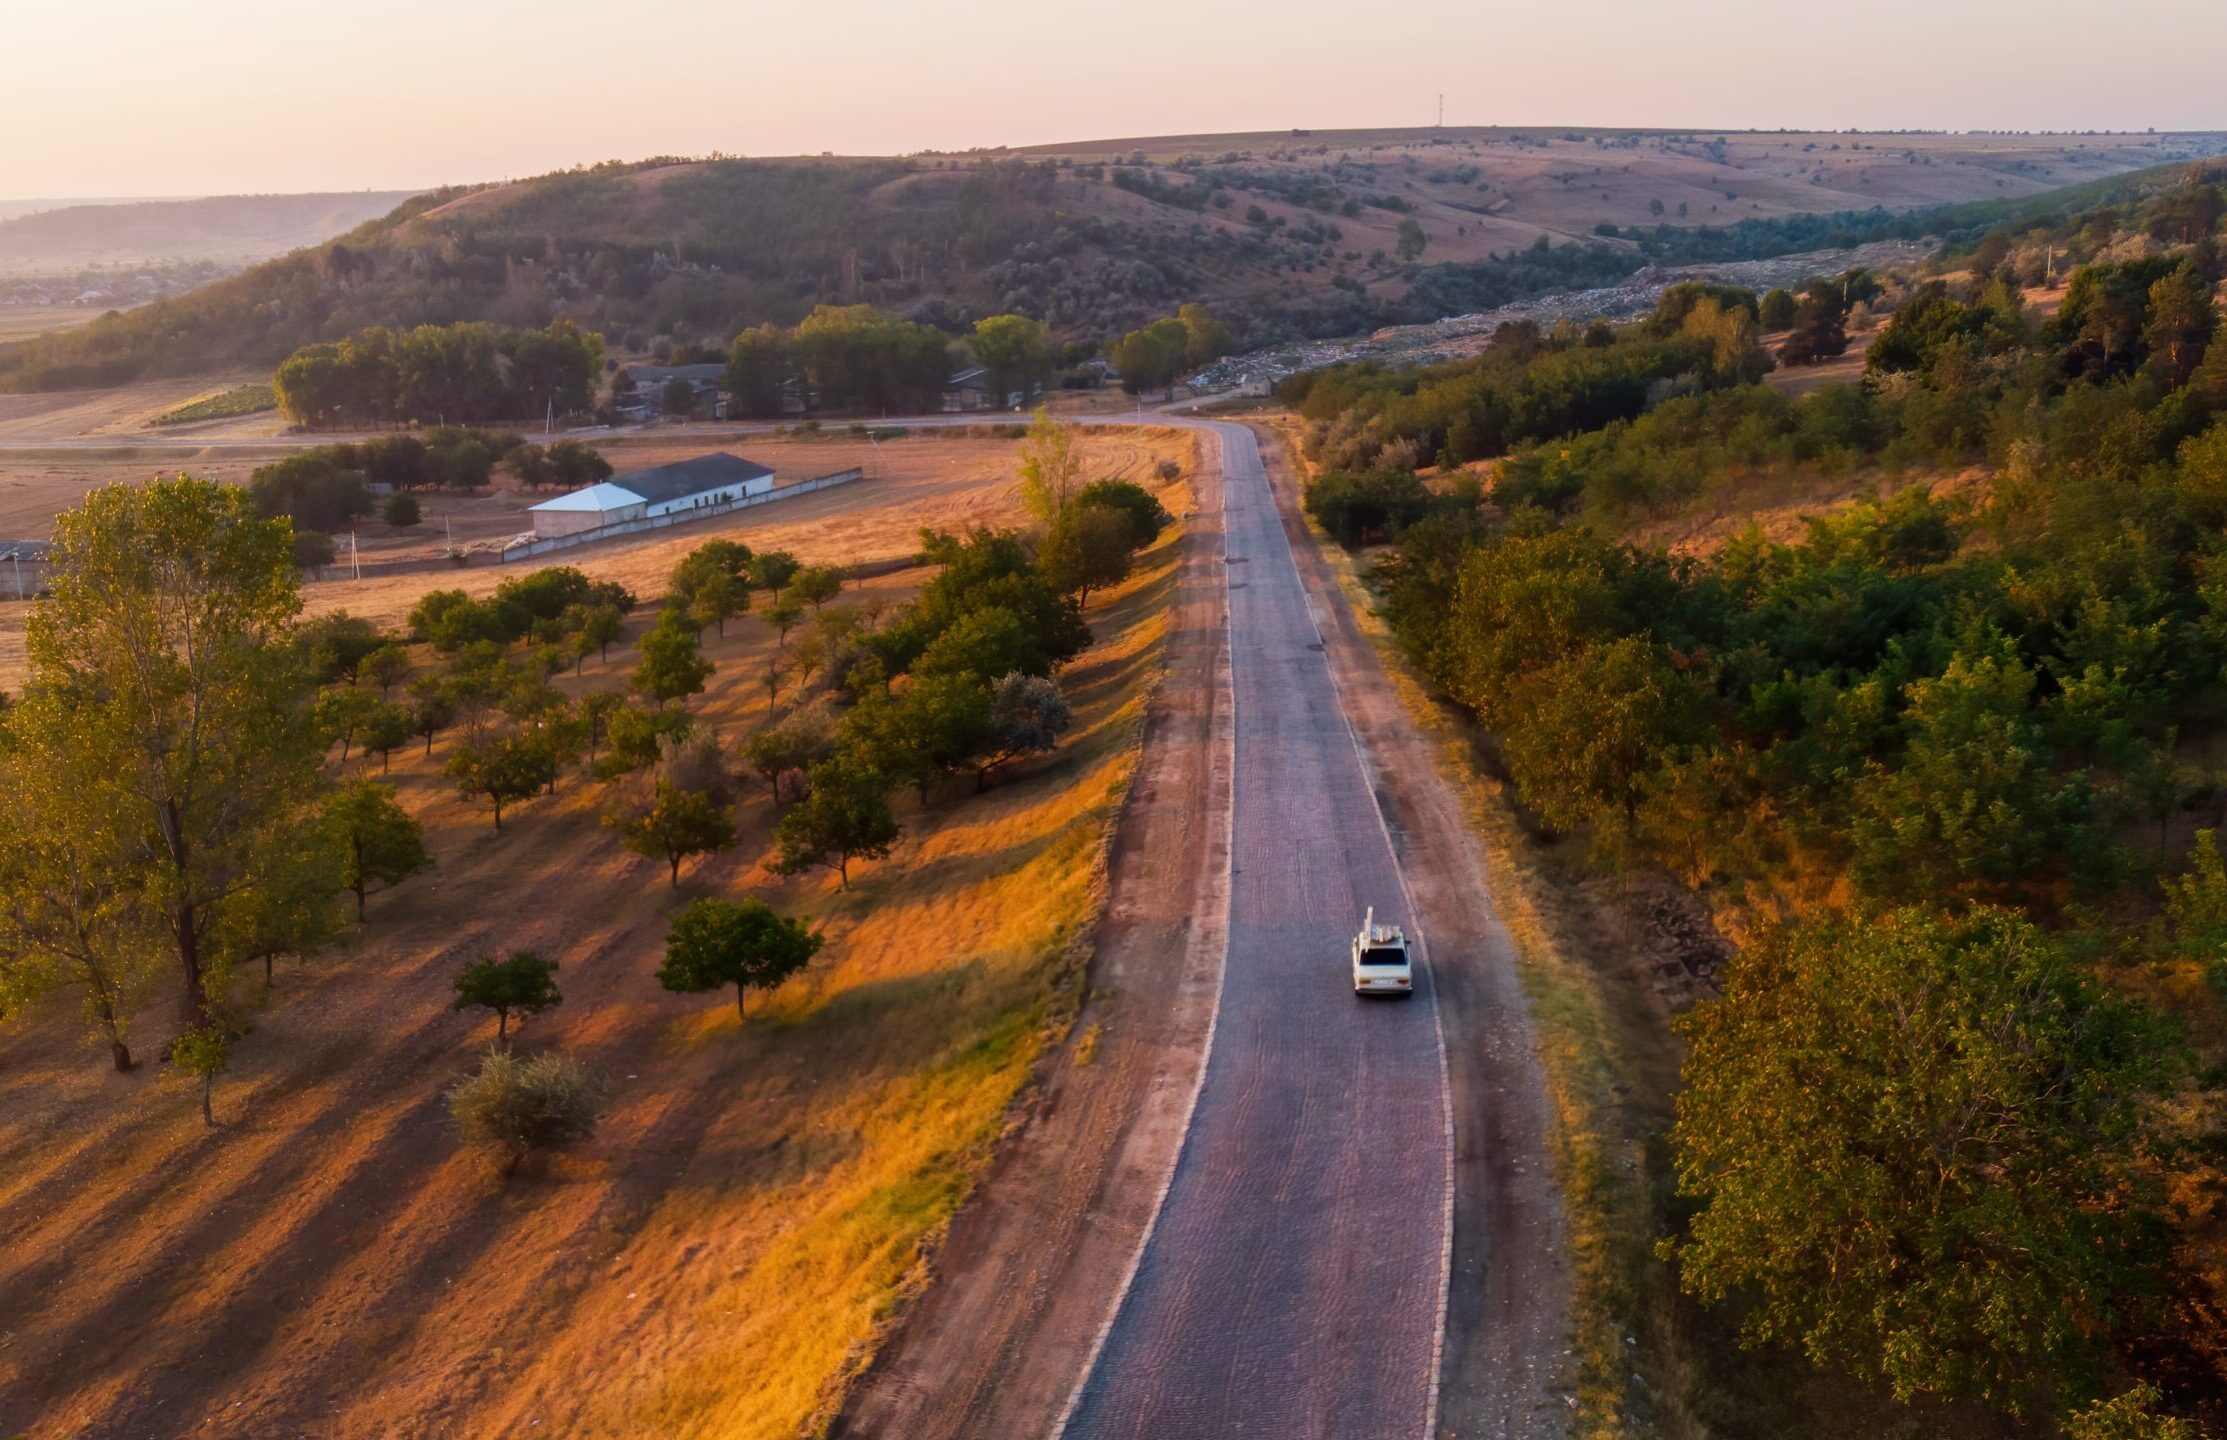 https://doradcy365.pl/wp-content/uploads/2021/02/country-road-moving-car-sunrise-fields-hills-covered-with-trees-min-scaled-e1613220247761.jpg